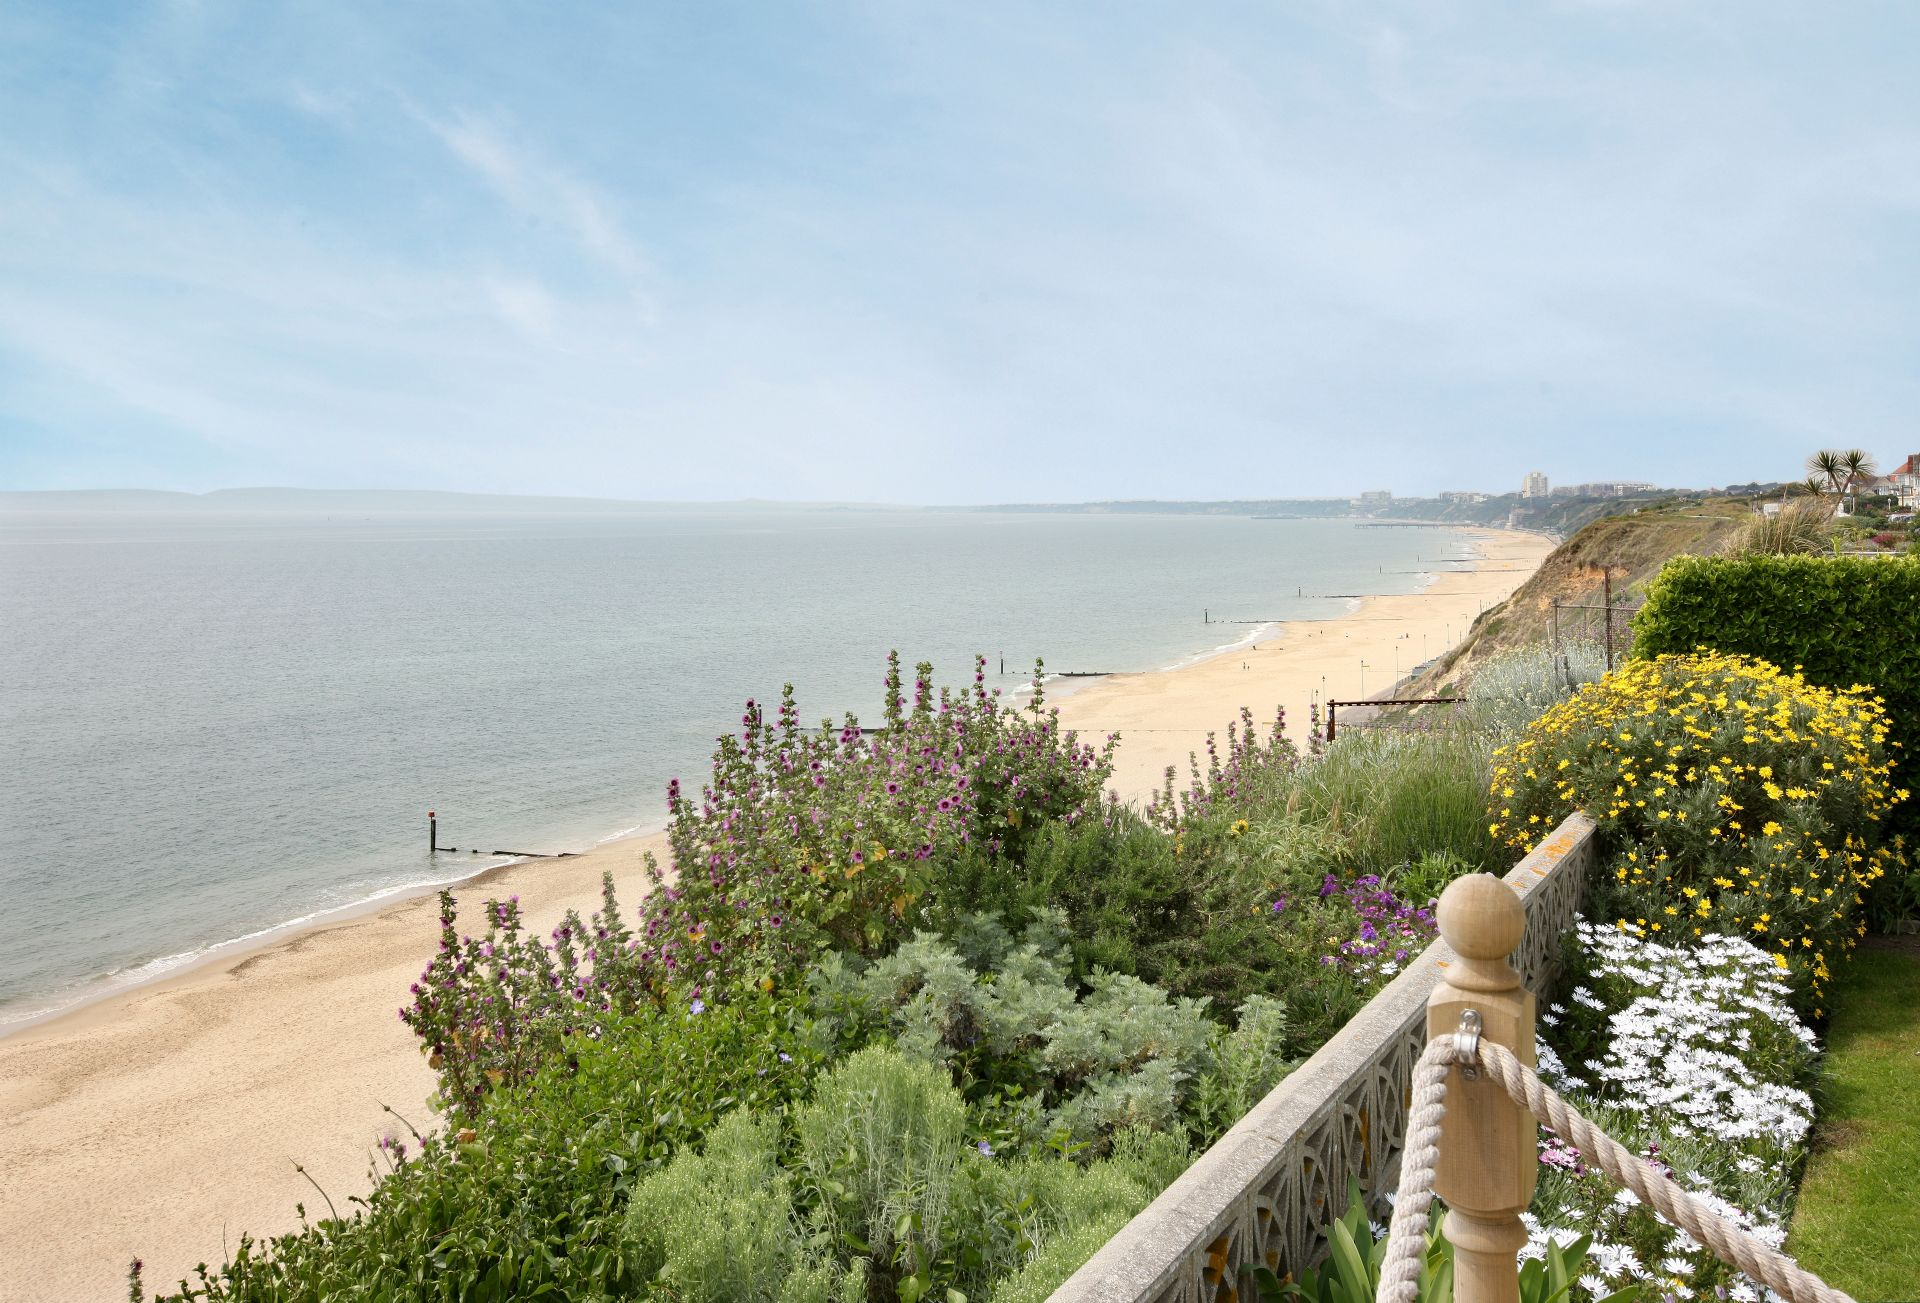 The view from the decking towards Bournemouth and Sandbanks